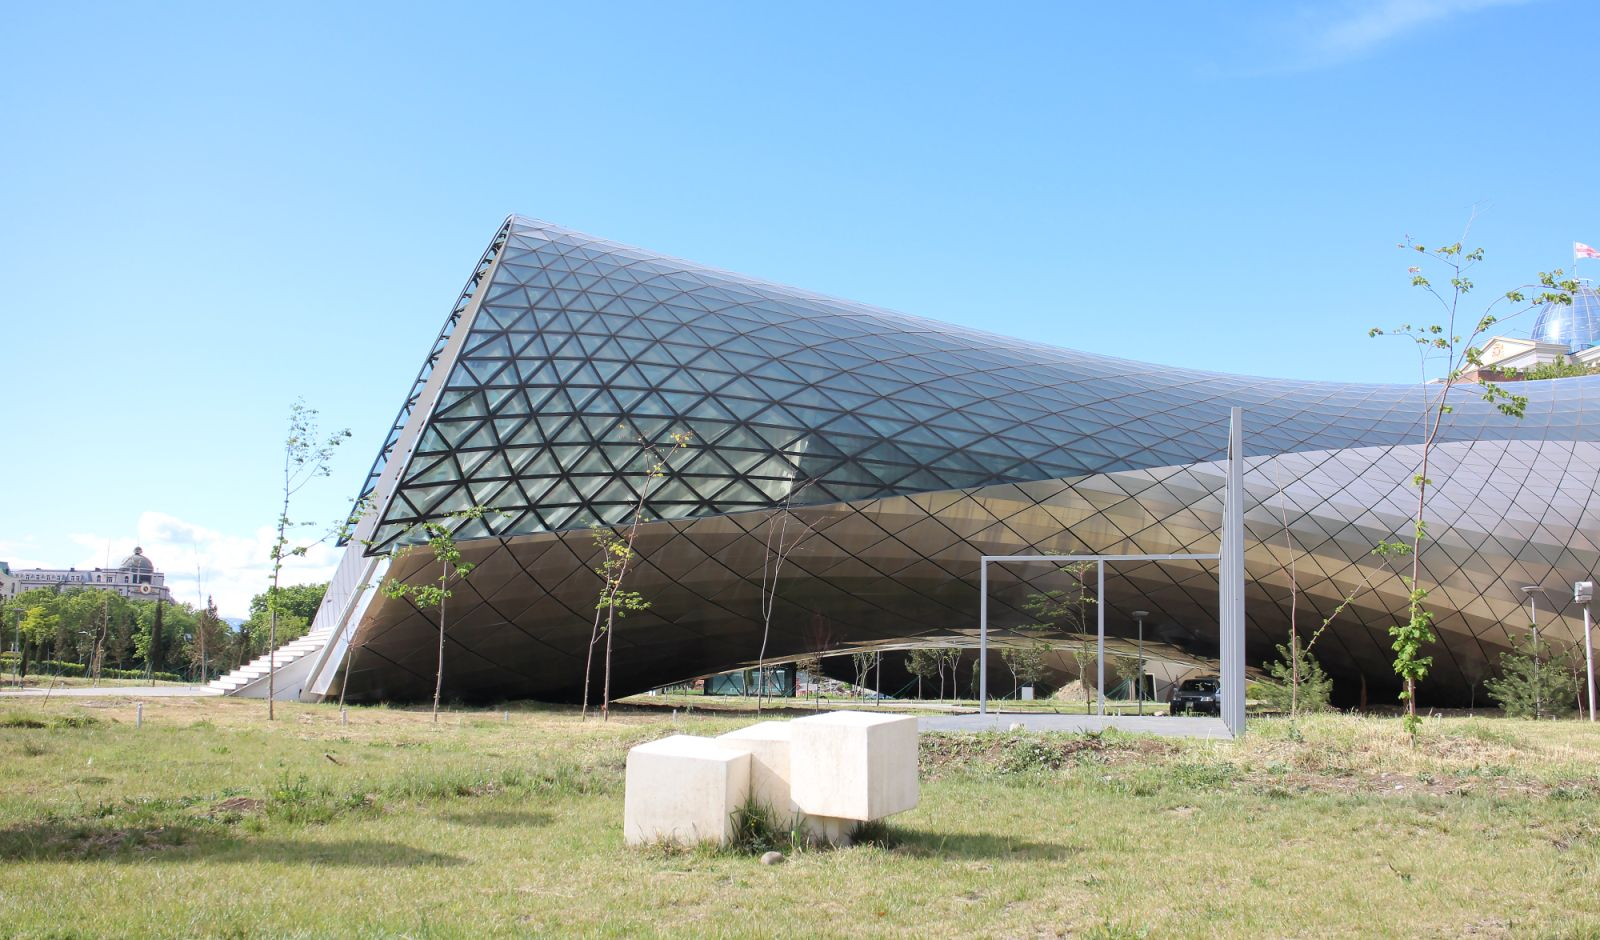 Music Theatre and Exhibition Hall in Rhike Park